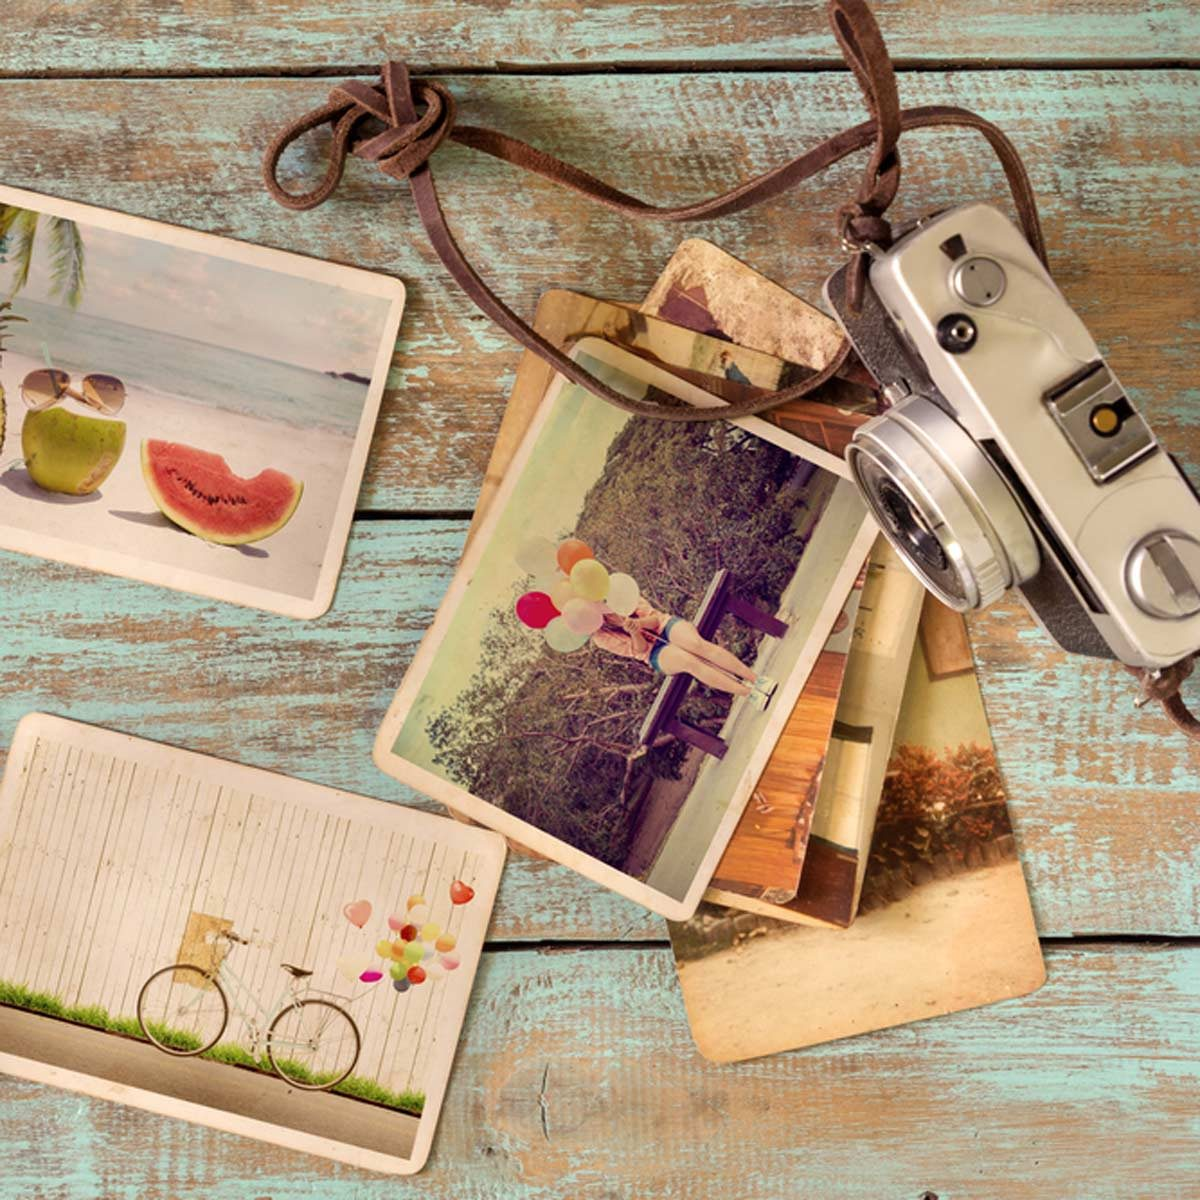 Best Ways To Store Old Print Photos The Family Handyman